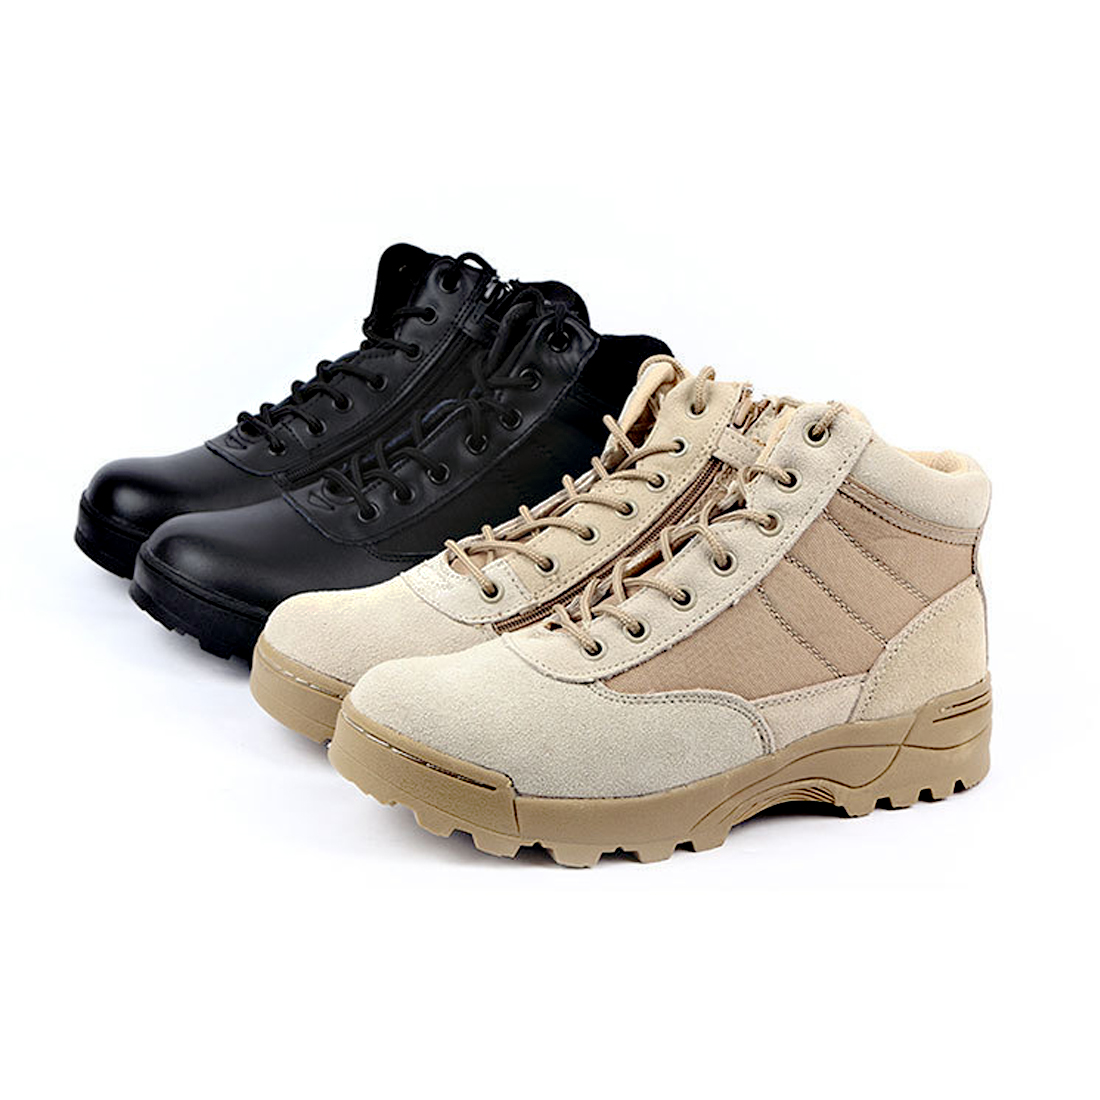 Military Tactical Boots Desert Combat Outdoor Army Hiking Boots Travel Botas Leather Autumn Ankle Men Work Boots winter Shoes